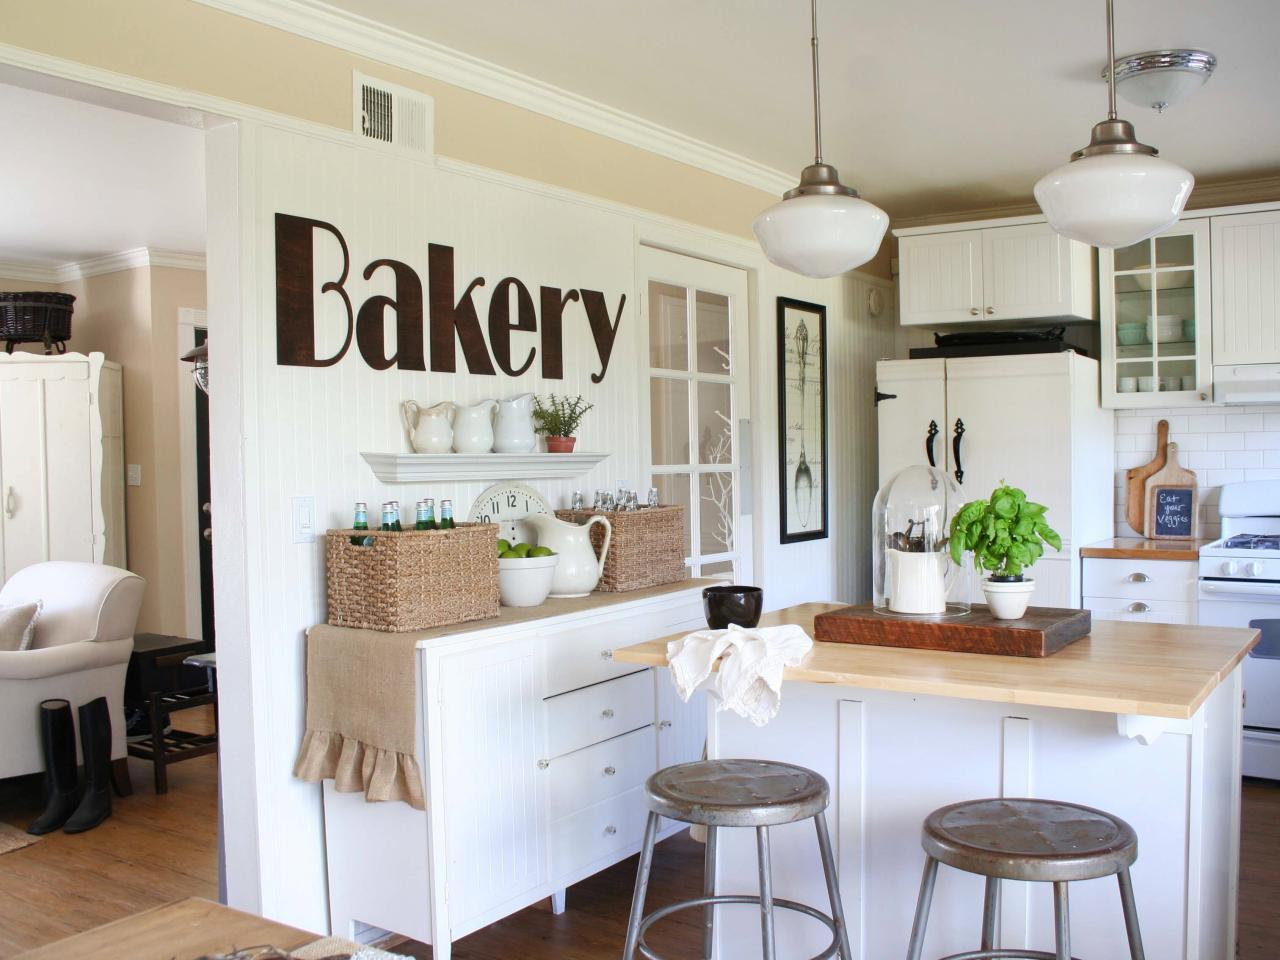 Shabby chic style guide interior design styles and color for Kitchen accessories ideas